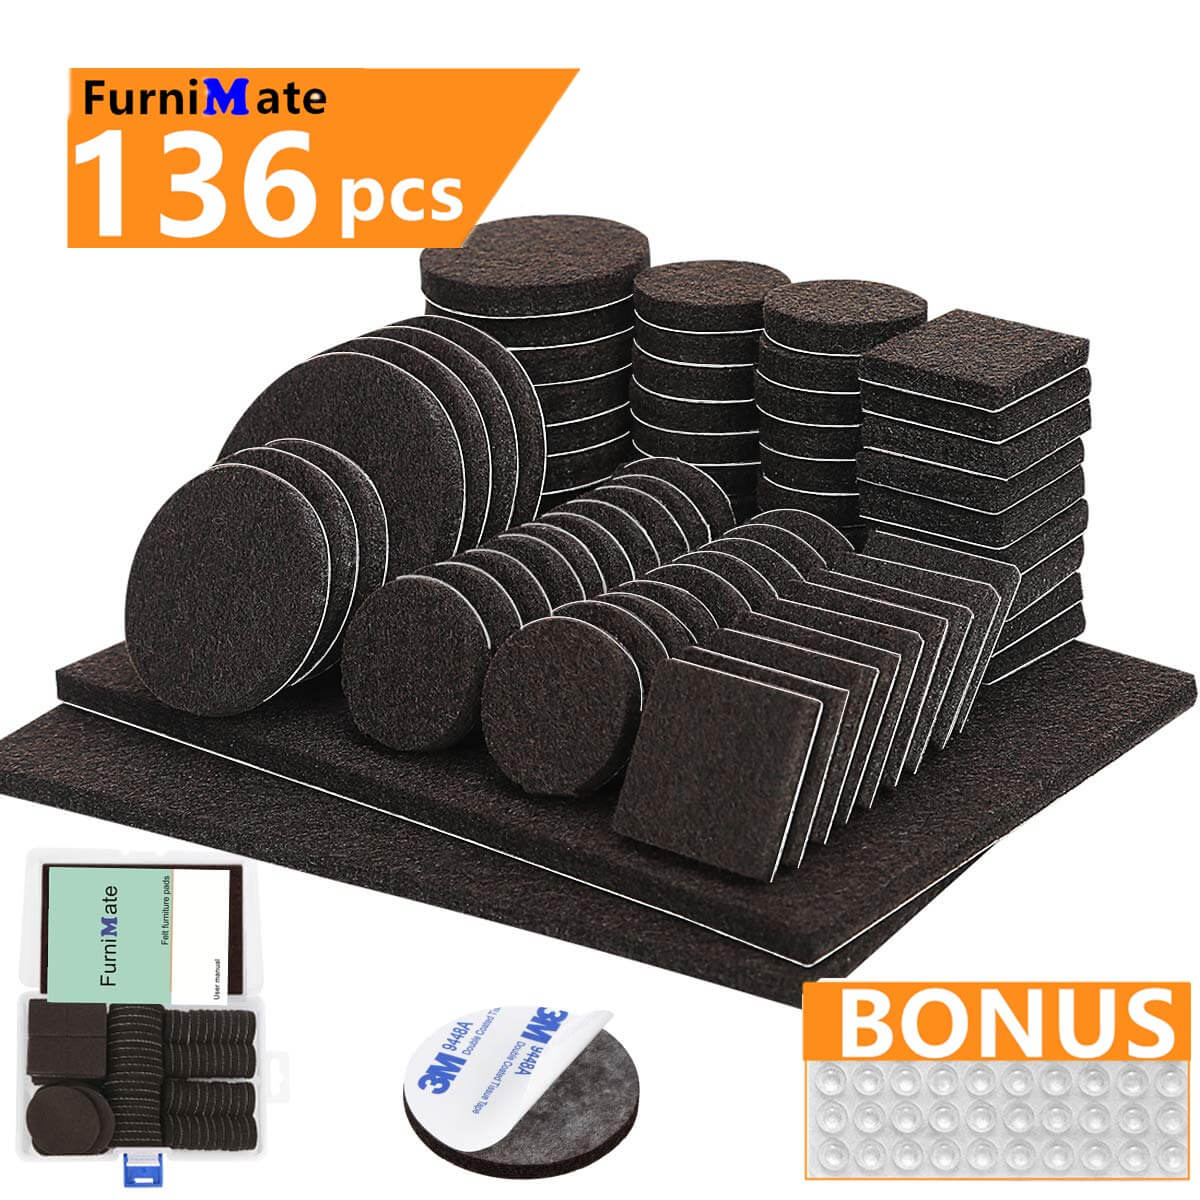 Furniture Pads 136 Pieces Pack Self Adhesive Felt Pad Brown Felt Furniture Pads 5mm Thick Anti Scratch Floor Protectors for Chair Legs Feet with Case and 30 Rubber Bumpers for Hardwood Tile Wood Floor.jpg